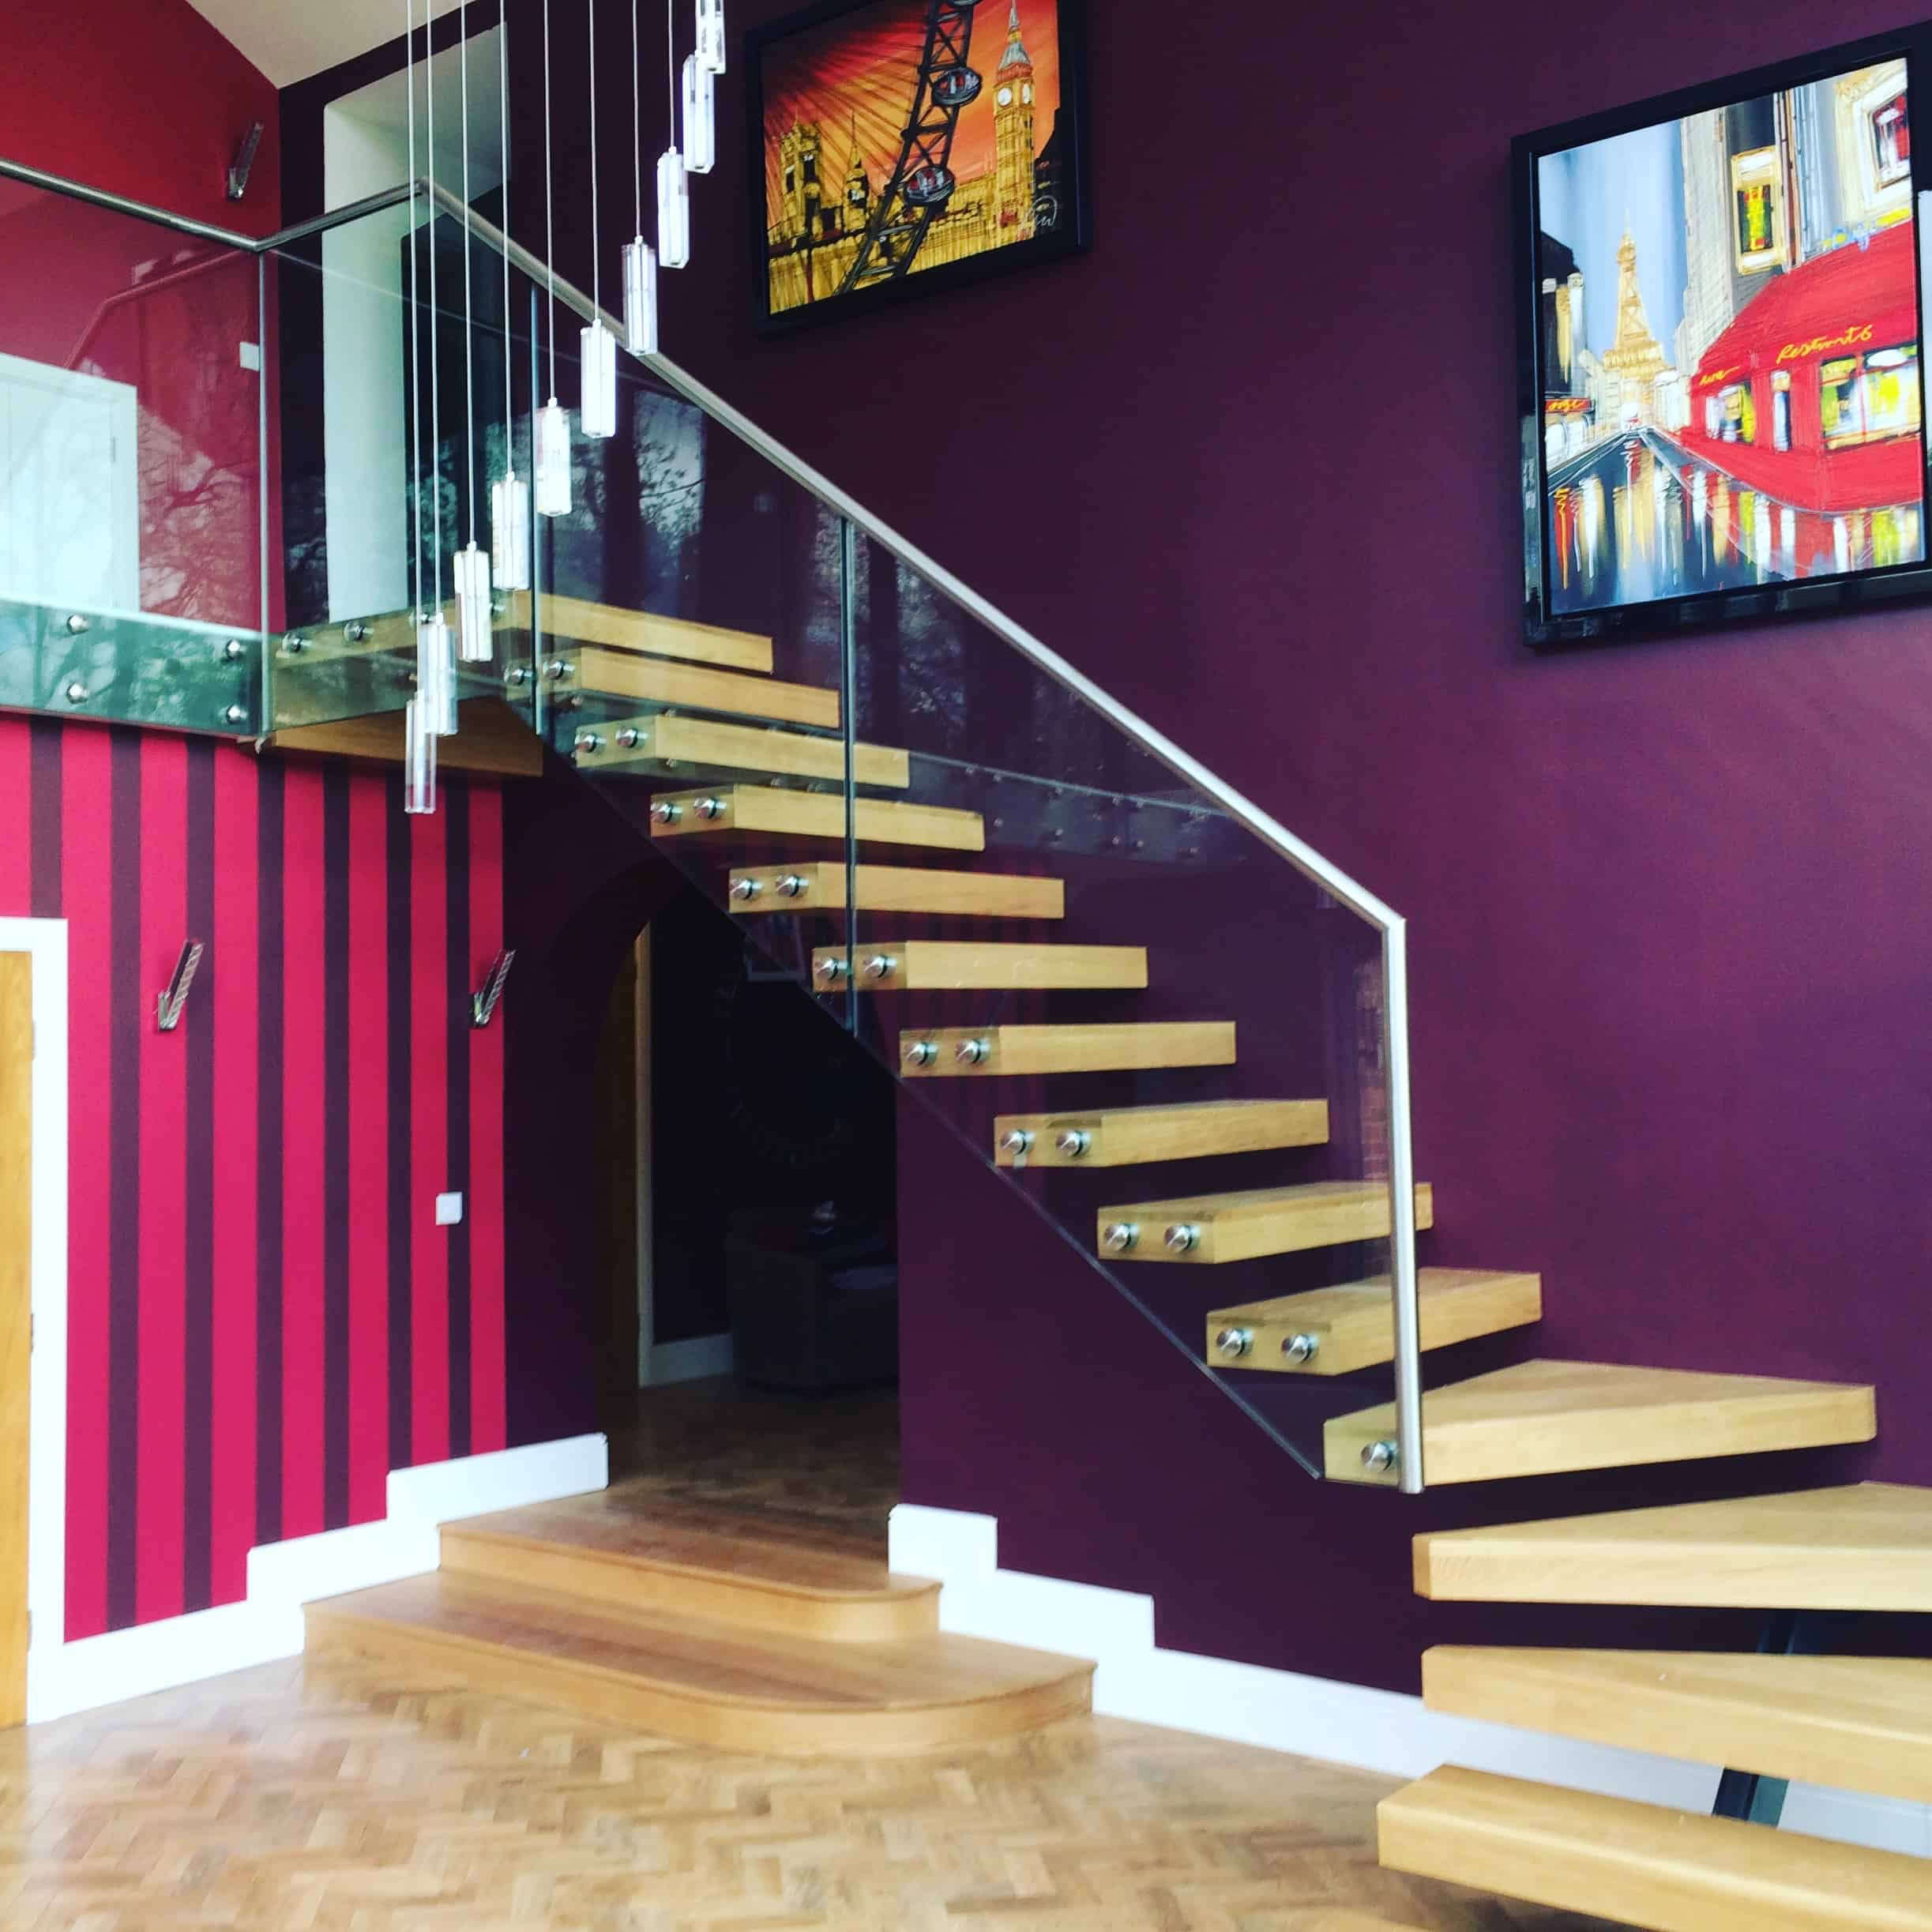 New feature staircase installed at residential property in Southwell